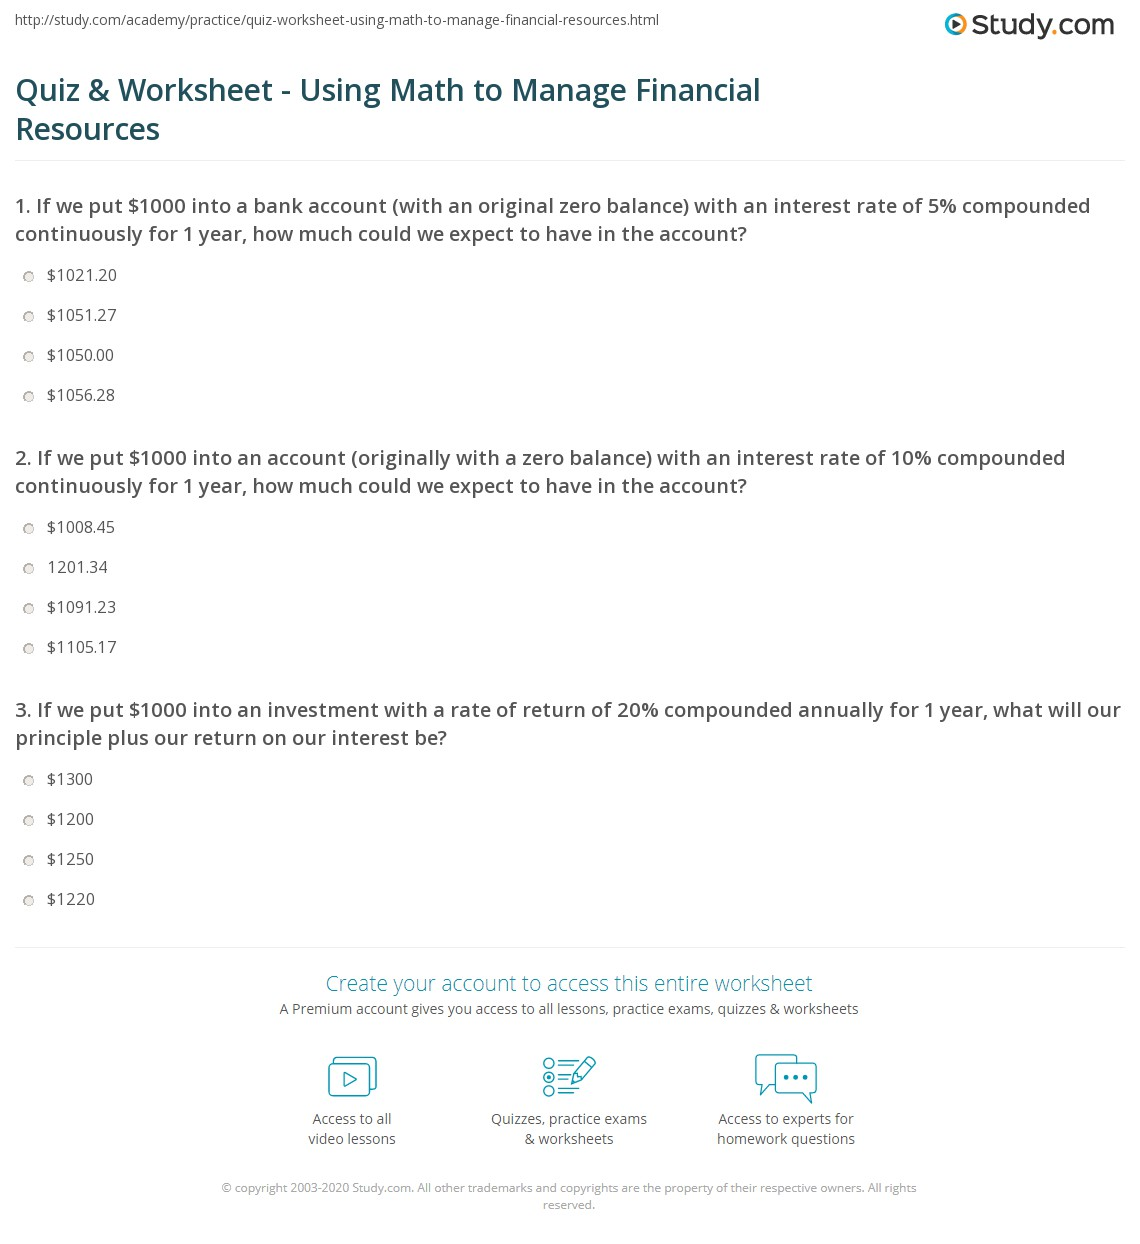 Quiz & Worksheet - Using Math to Manage Financial Resources | Study.com